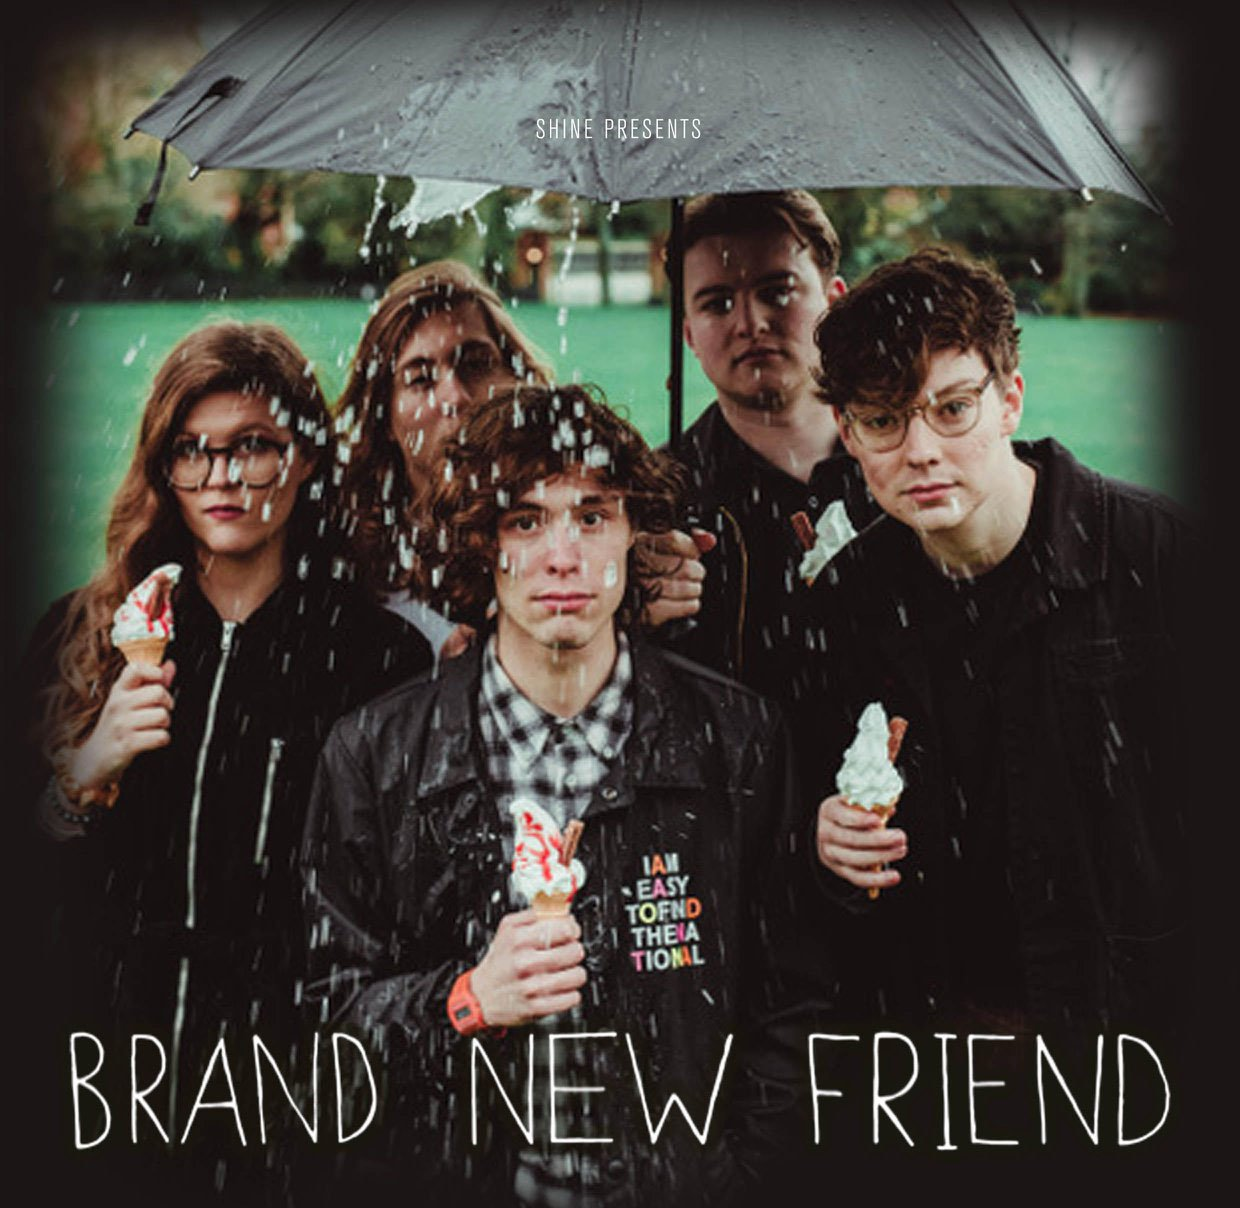 BRAND NEW FRIEND play their biggest Belfast headline show to date at Voodoo on Saturday 14th March 2020